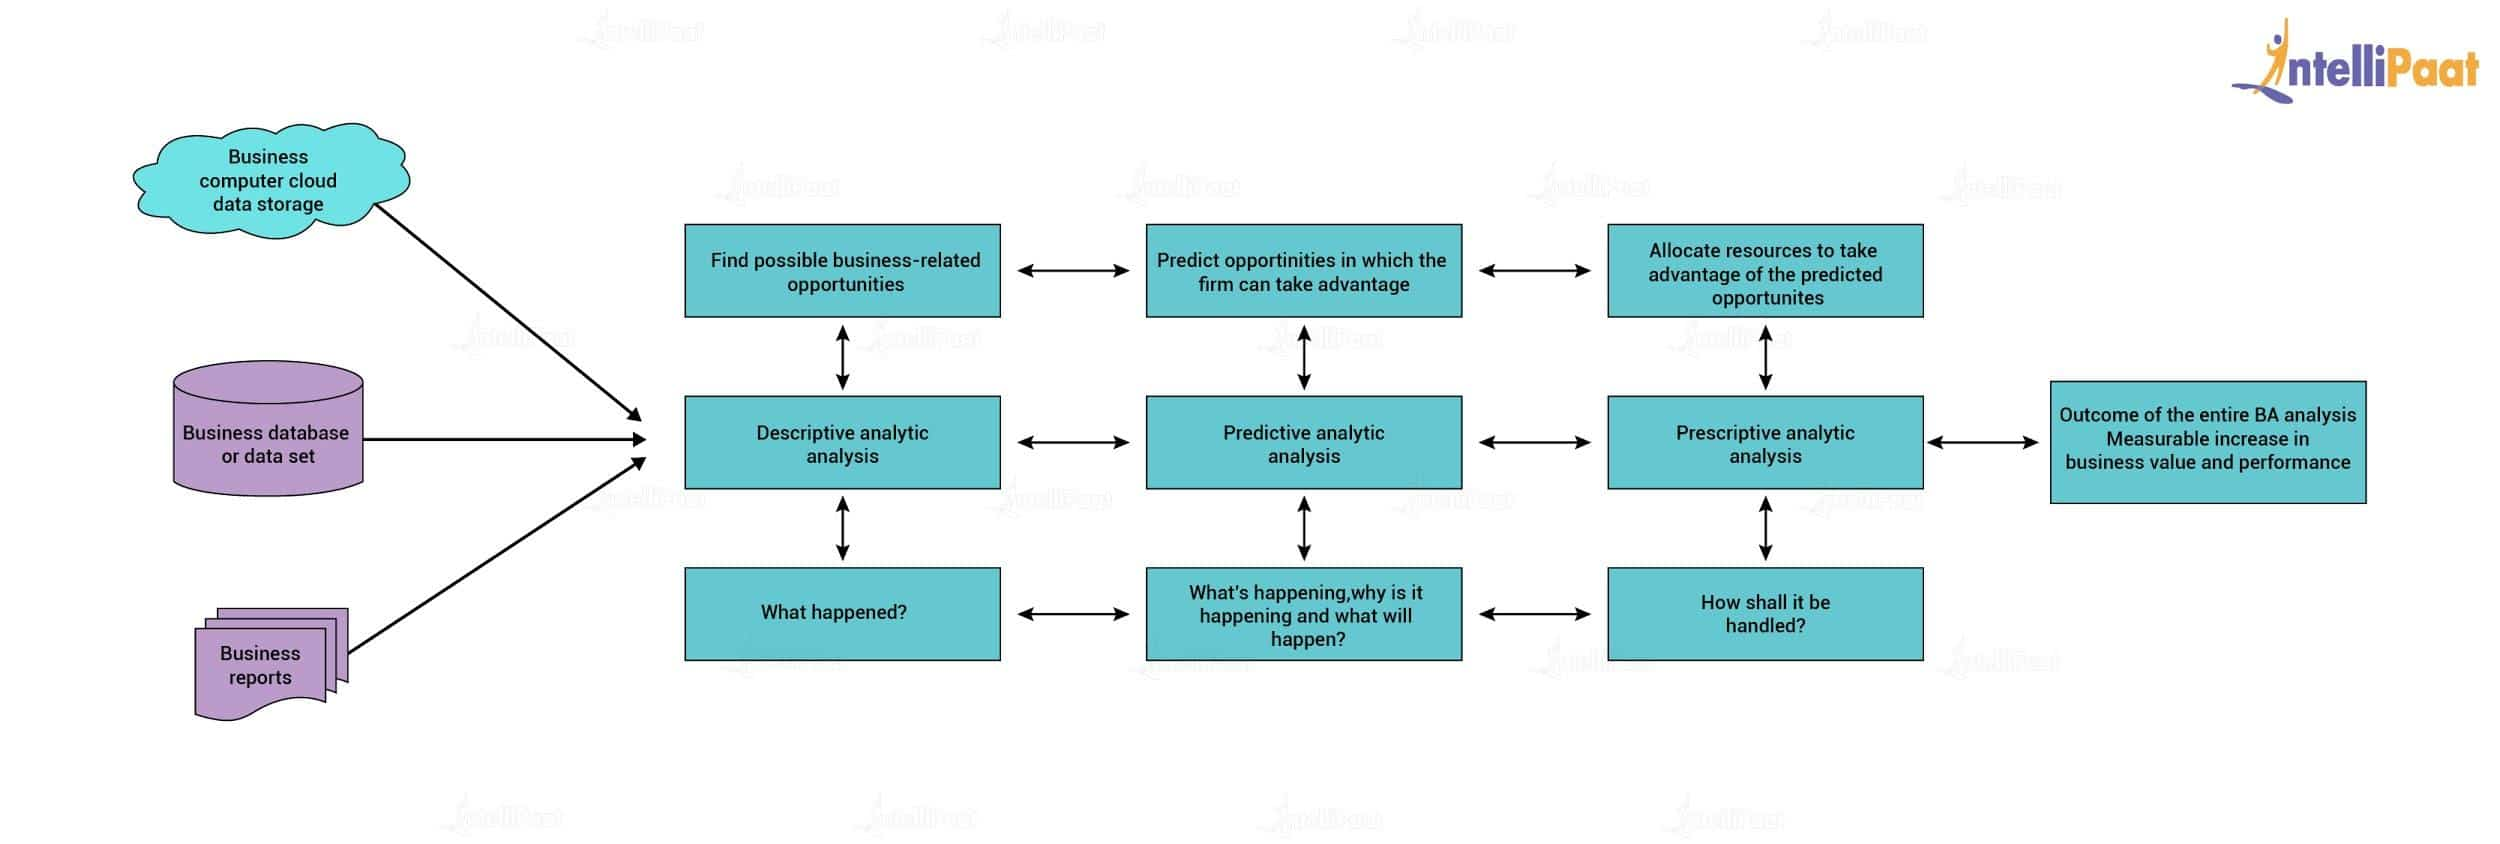 The Business Analytics Process diagram